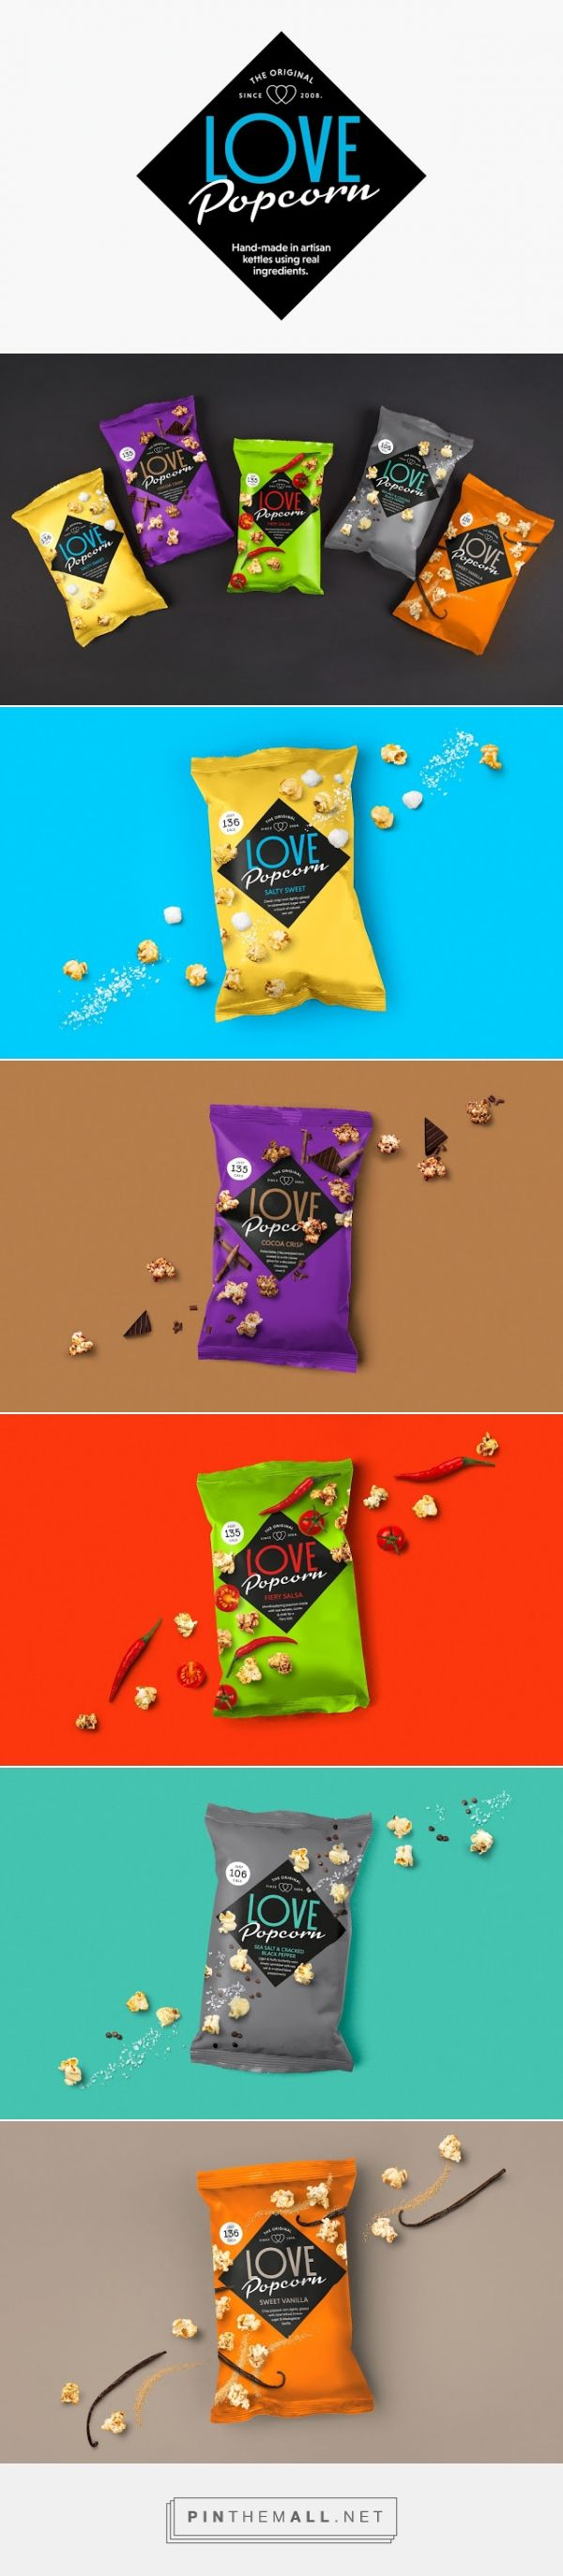 LOVE #Popcorn #packaging by Robot Food - http://www.packagingoftheworld.com/2015/02/love-popcorn.html